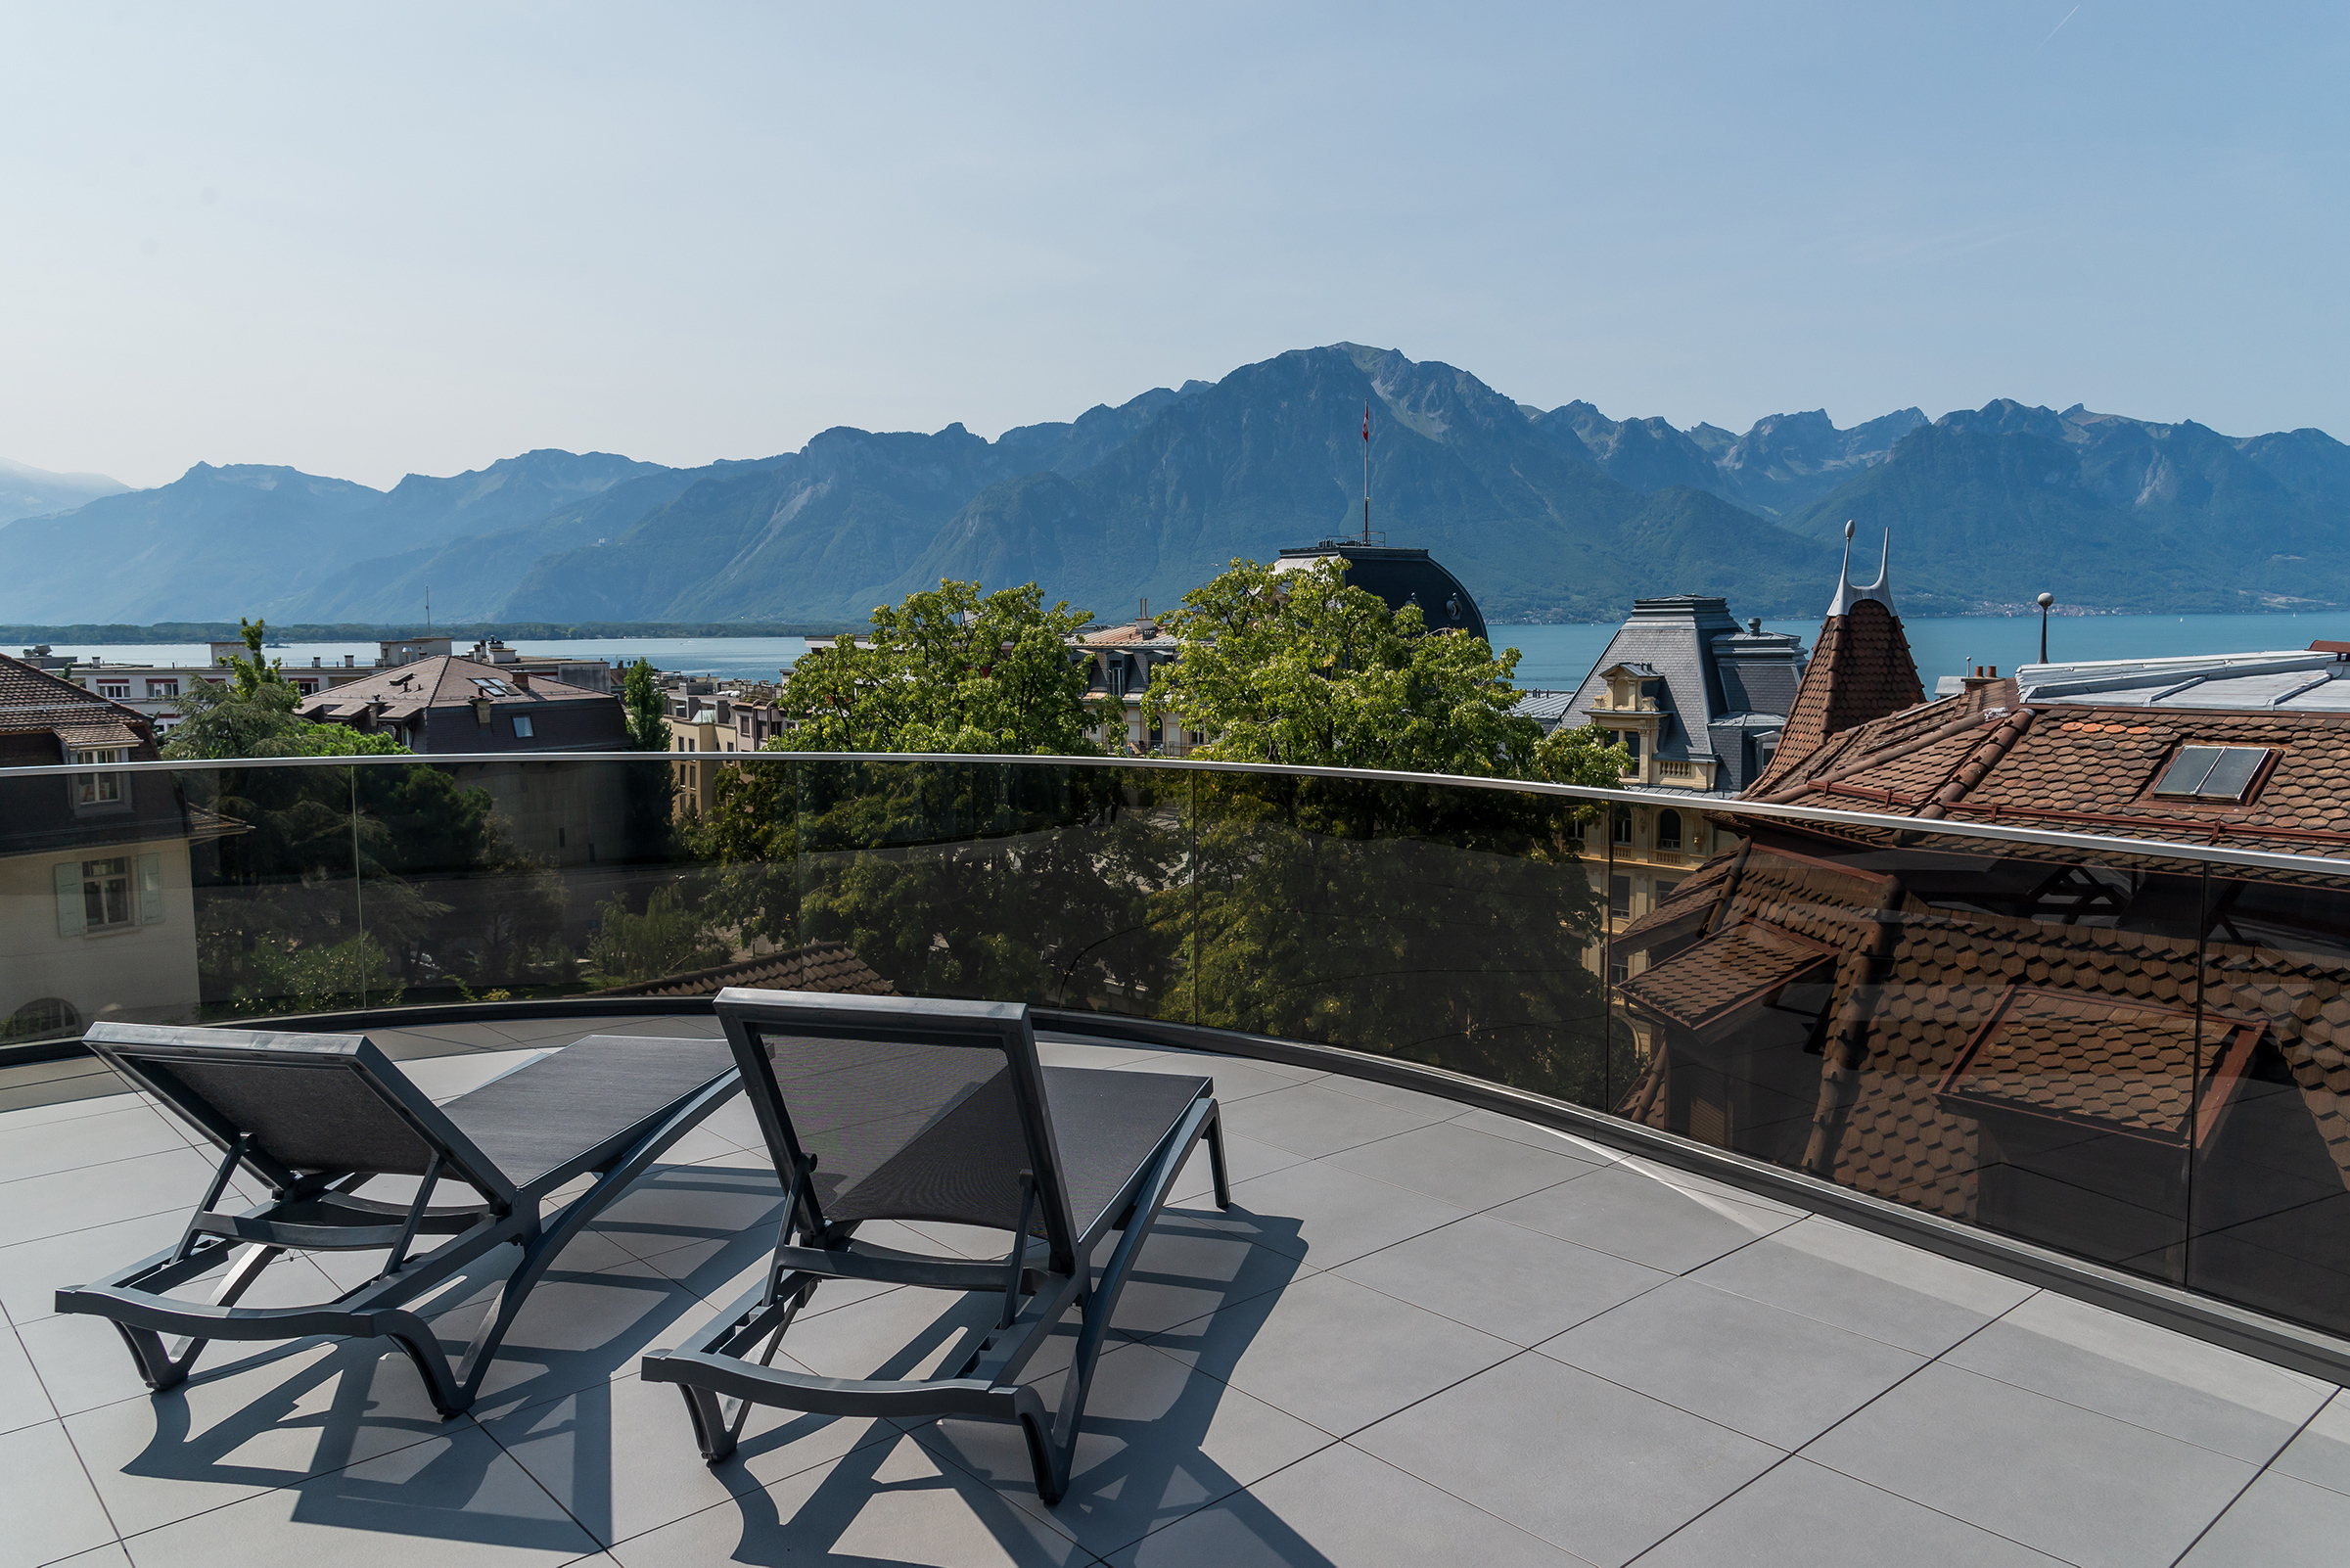 View from a terrasse at HIM Hotel Institute Montreux overlooking Lake Geneva and the Alps